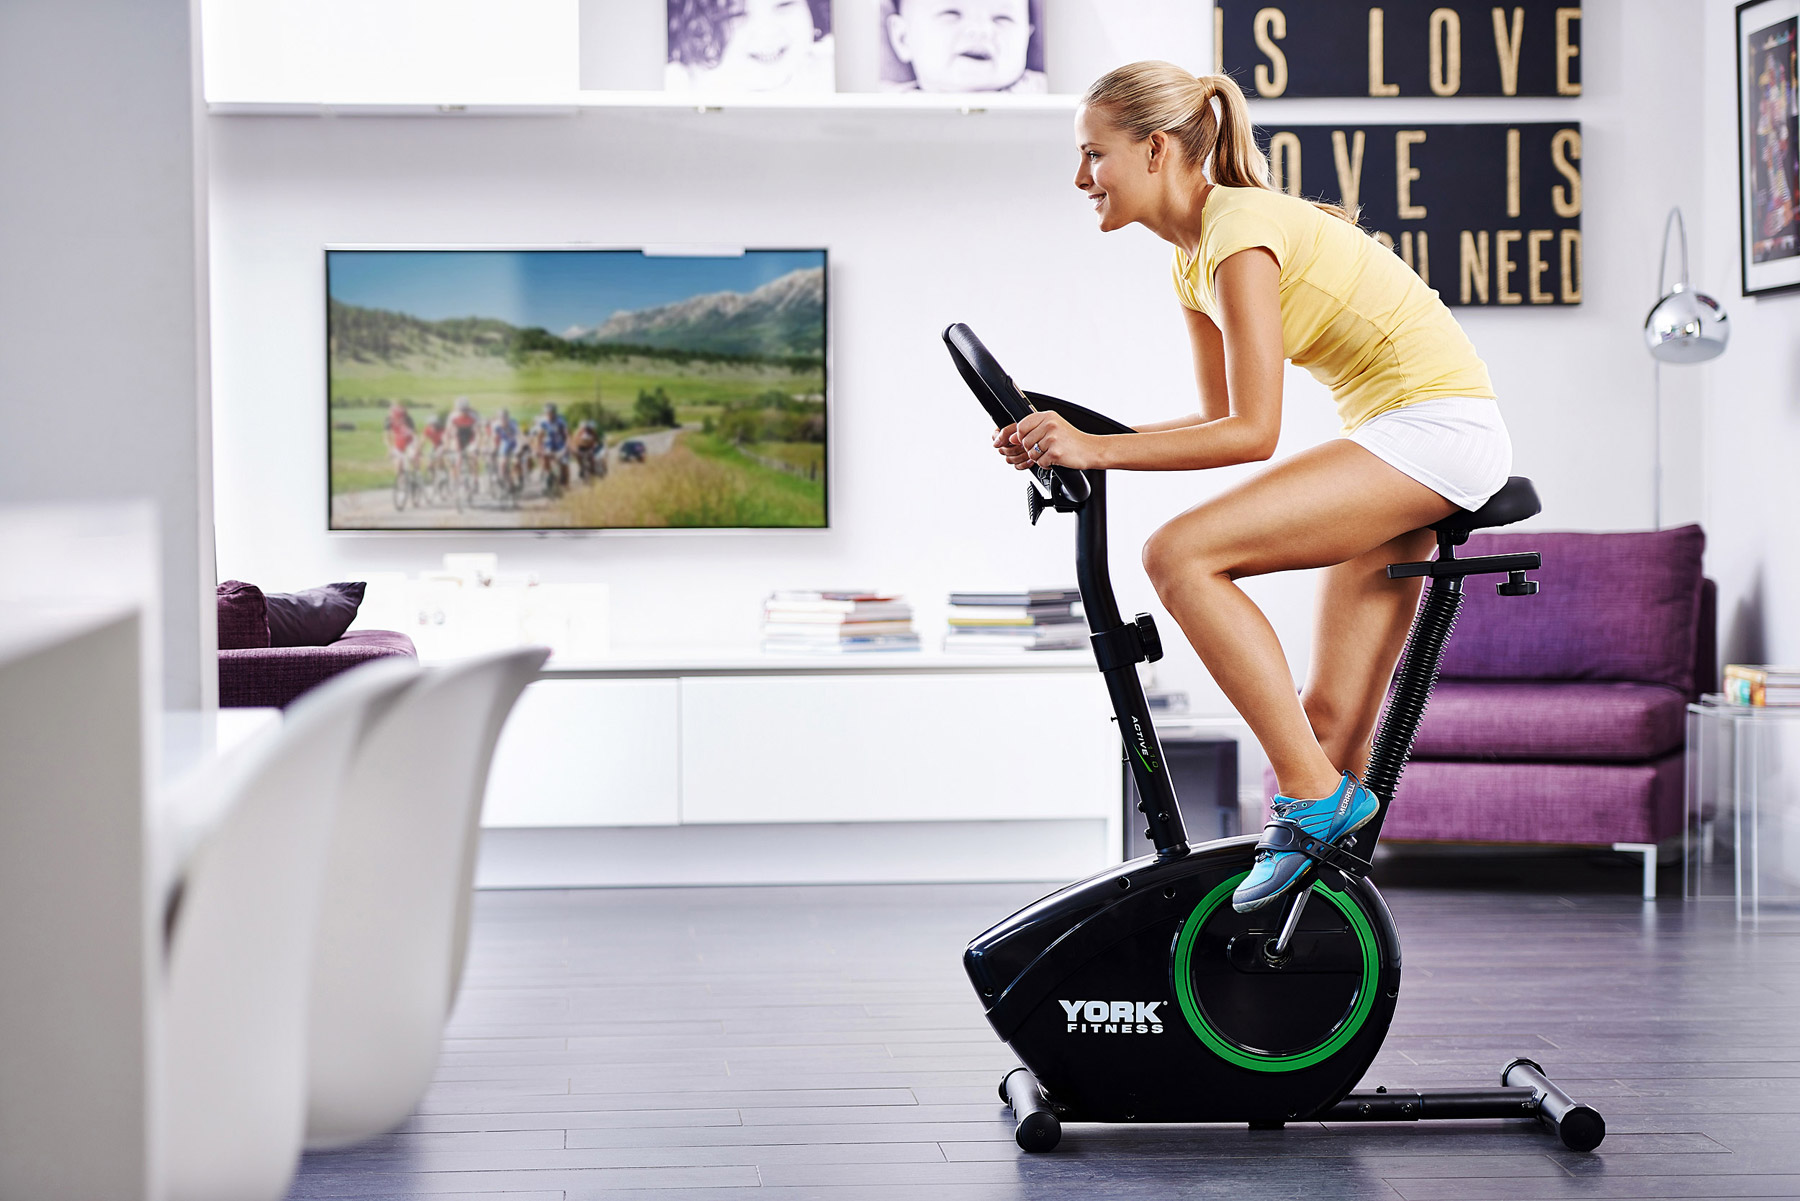 Lifestyle image showing a woman on an exercise bike in the home